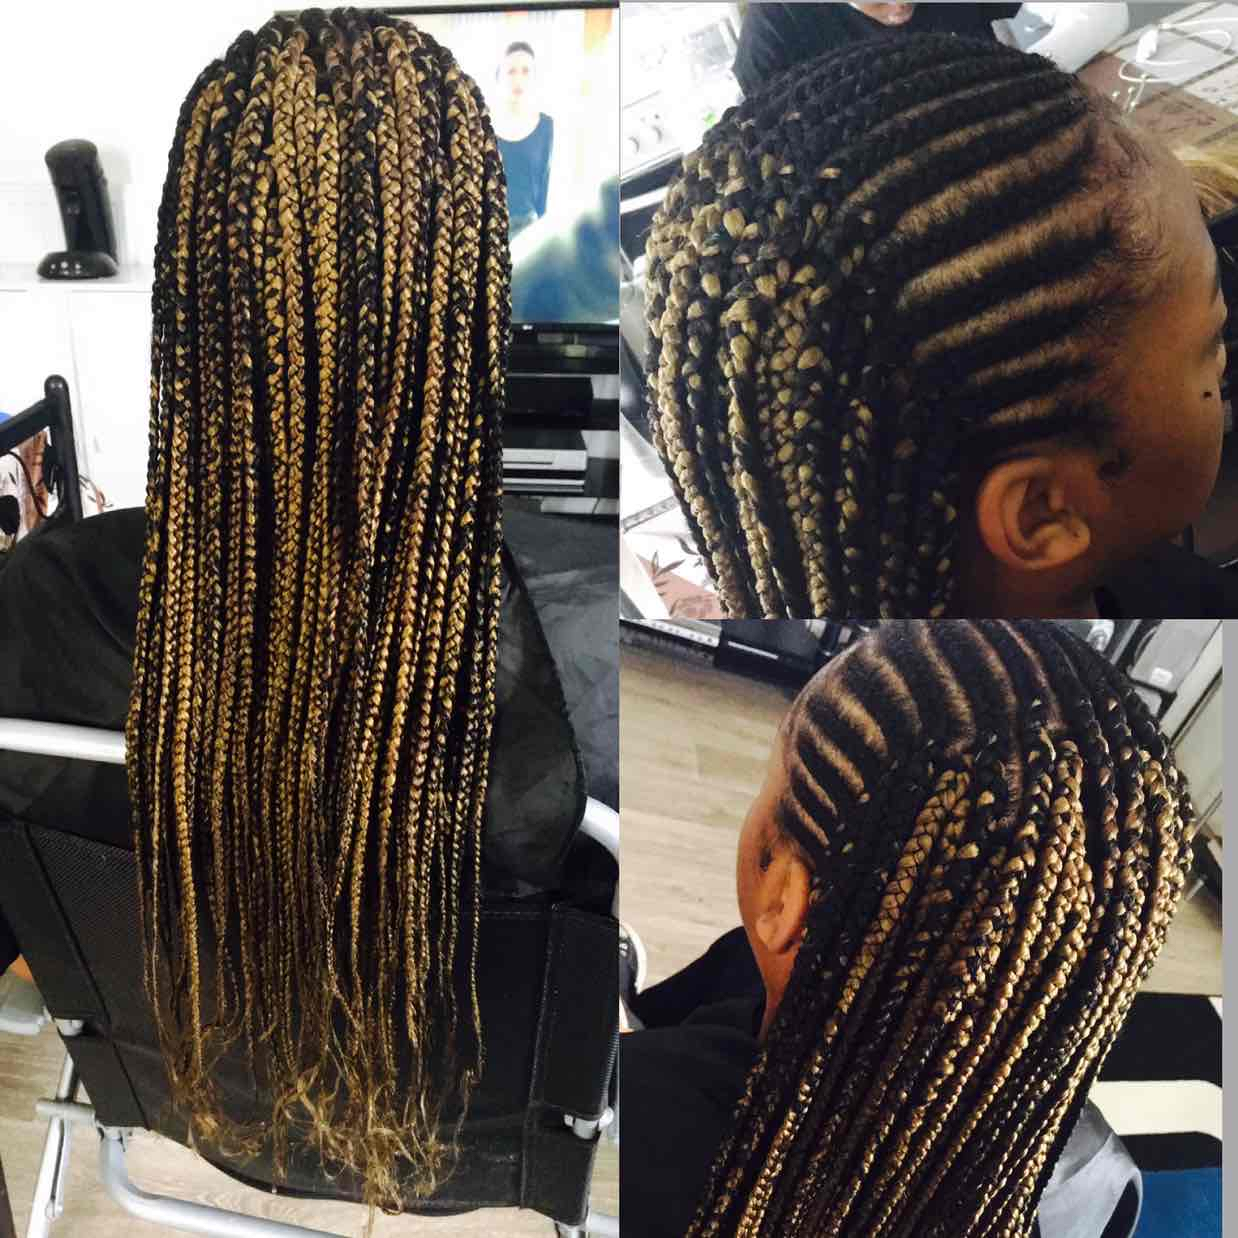 salon de coiffure afro tresse tresses box braids crochet braids vanilles tissages paris 75 77 78 91 92 93 94 95 VCKCZXPZ